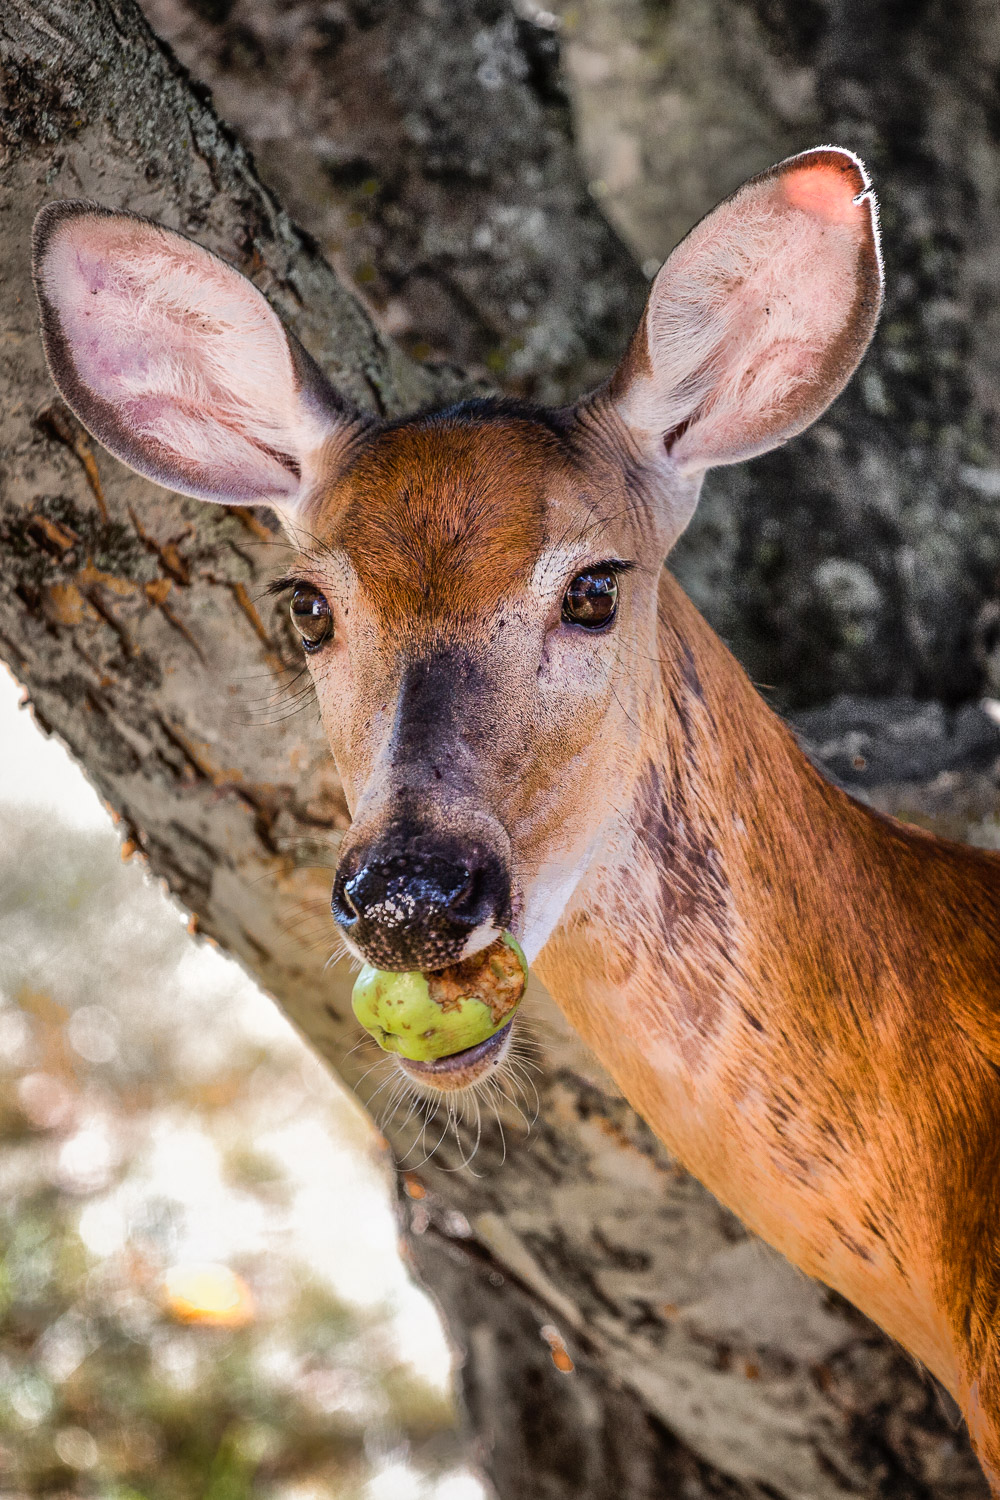 Young-Deer-Apple-In-Mouth.jpg